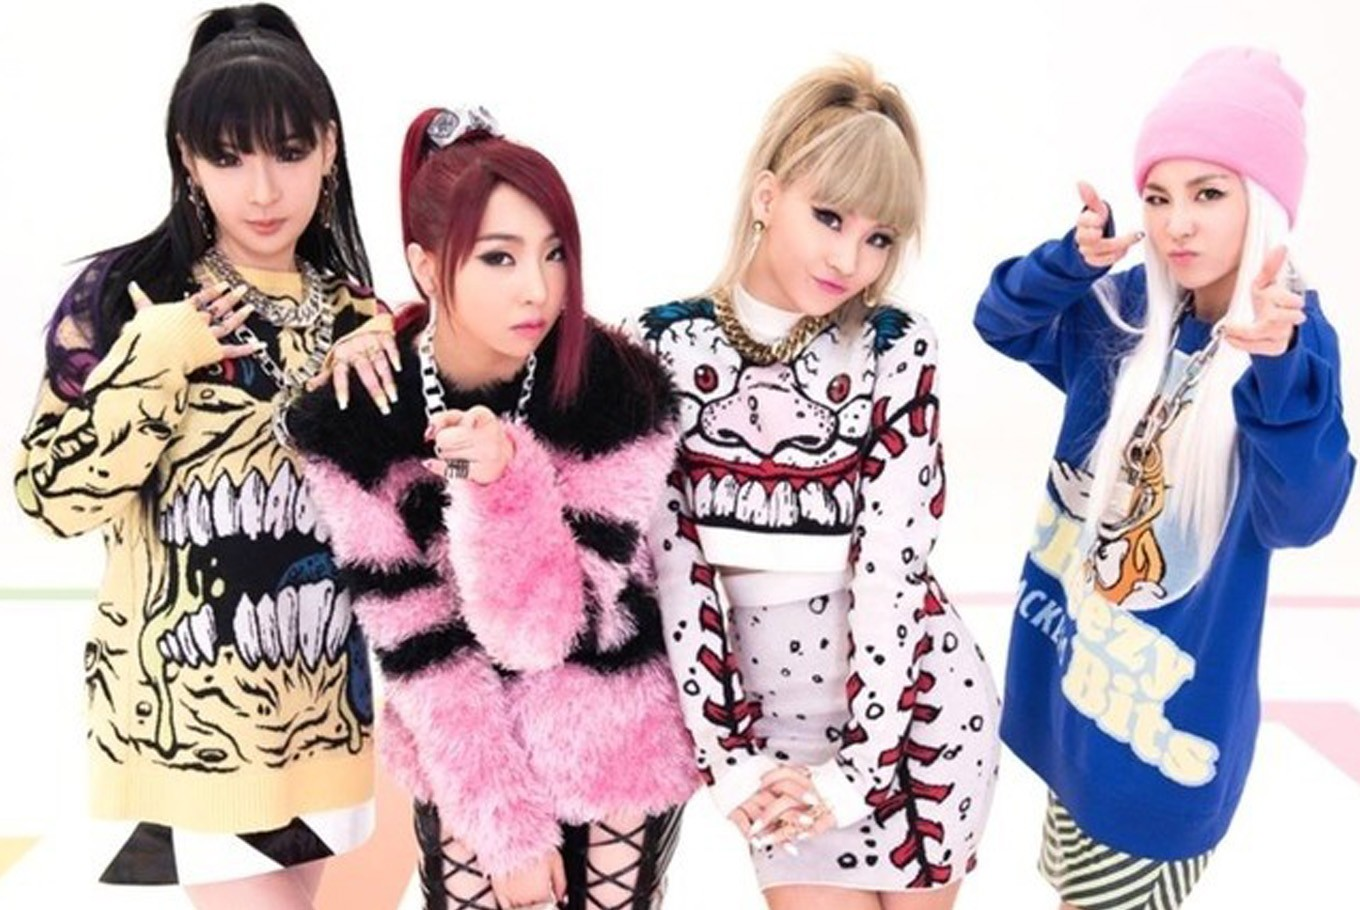 Catch up with 2NE1 - Entertainment - The Jakarta Post